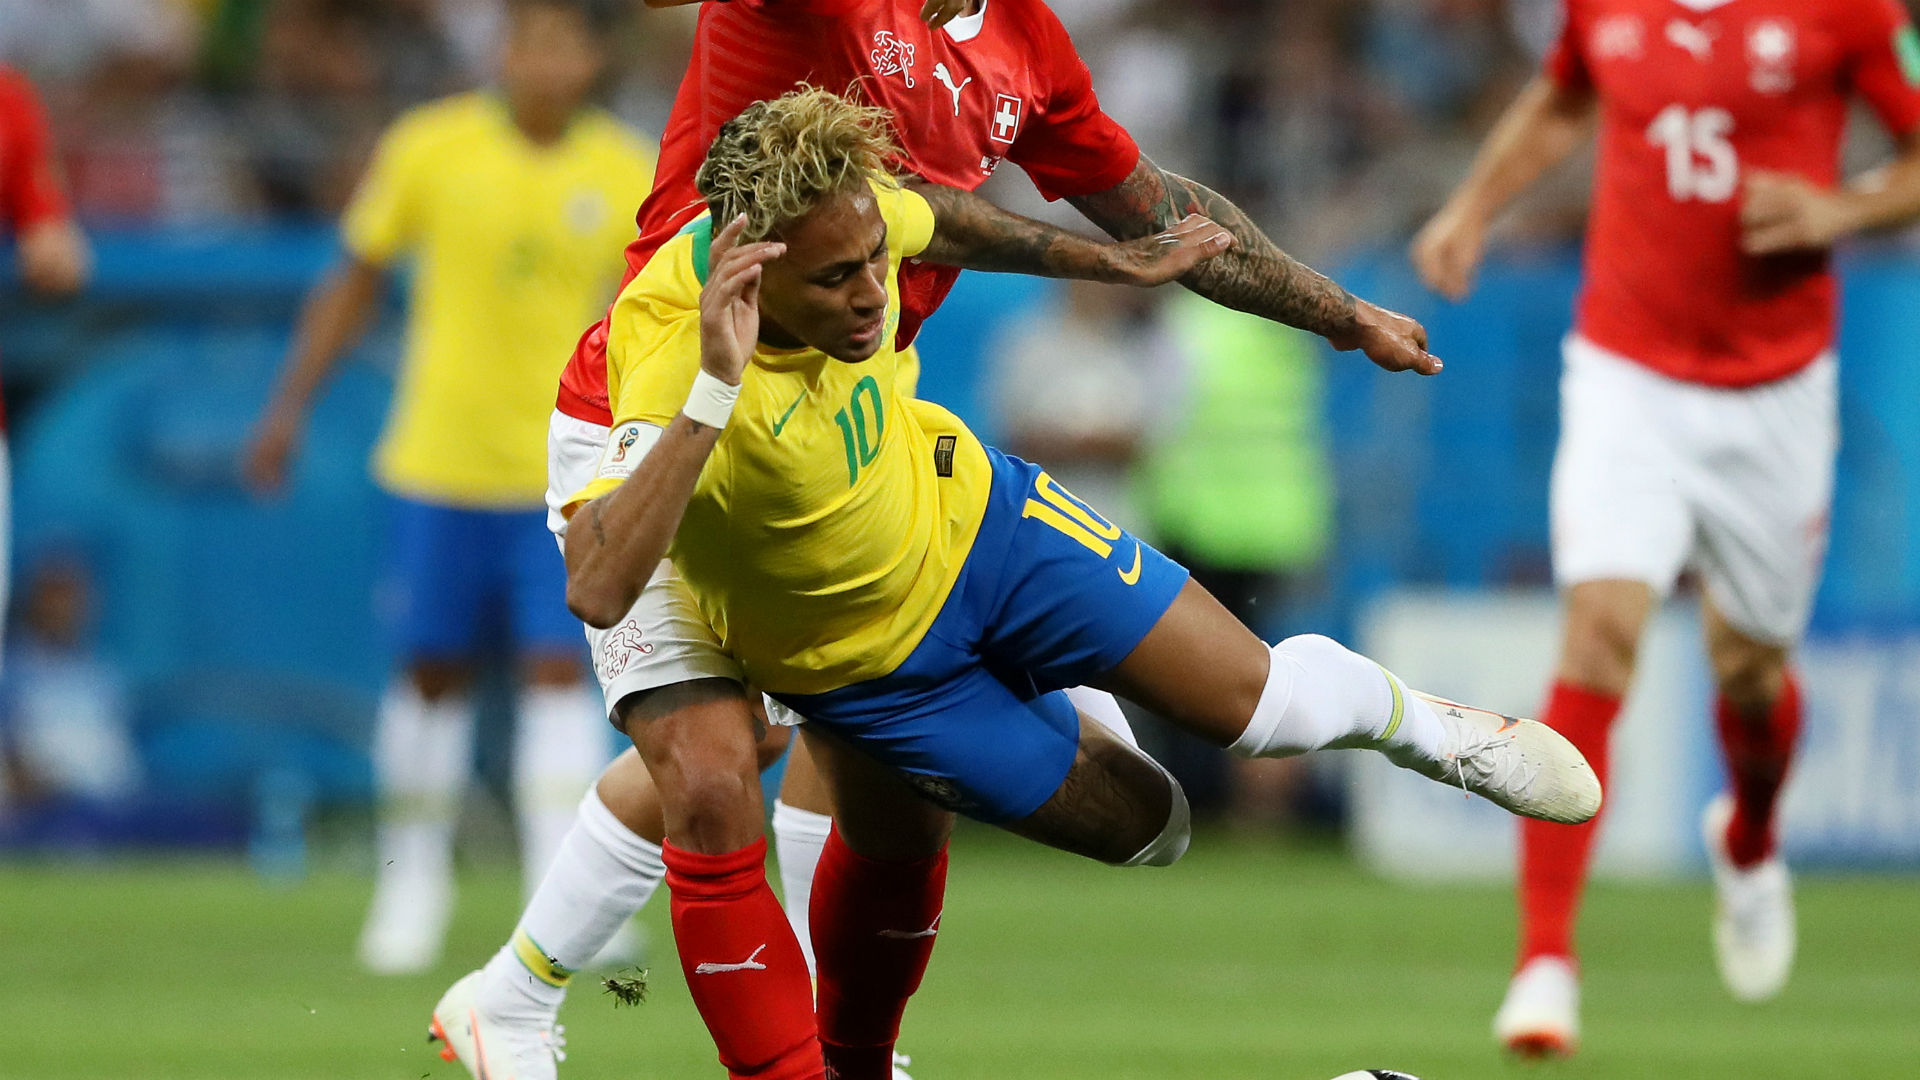 Tite: Neymar is still a work in progress